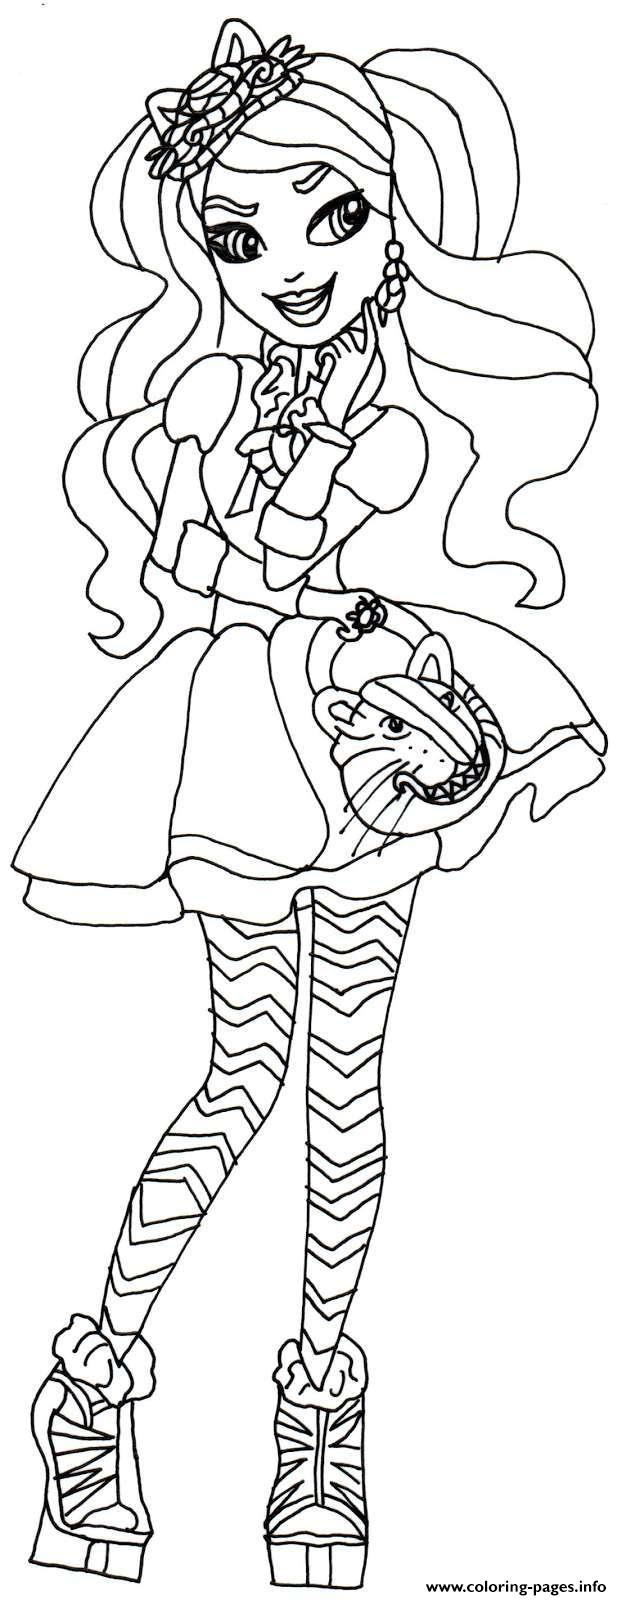 Kitty Cheshire Ever After High Coloring Pages Printable